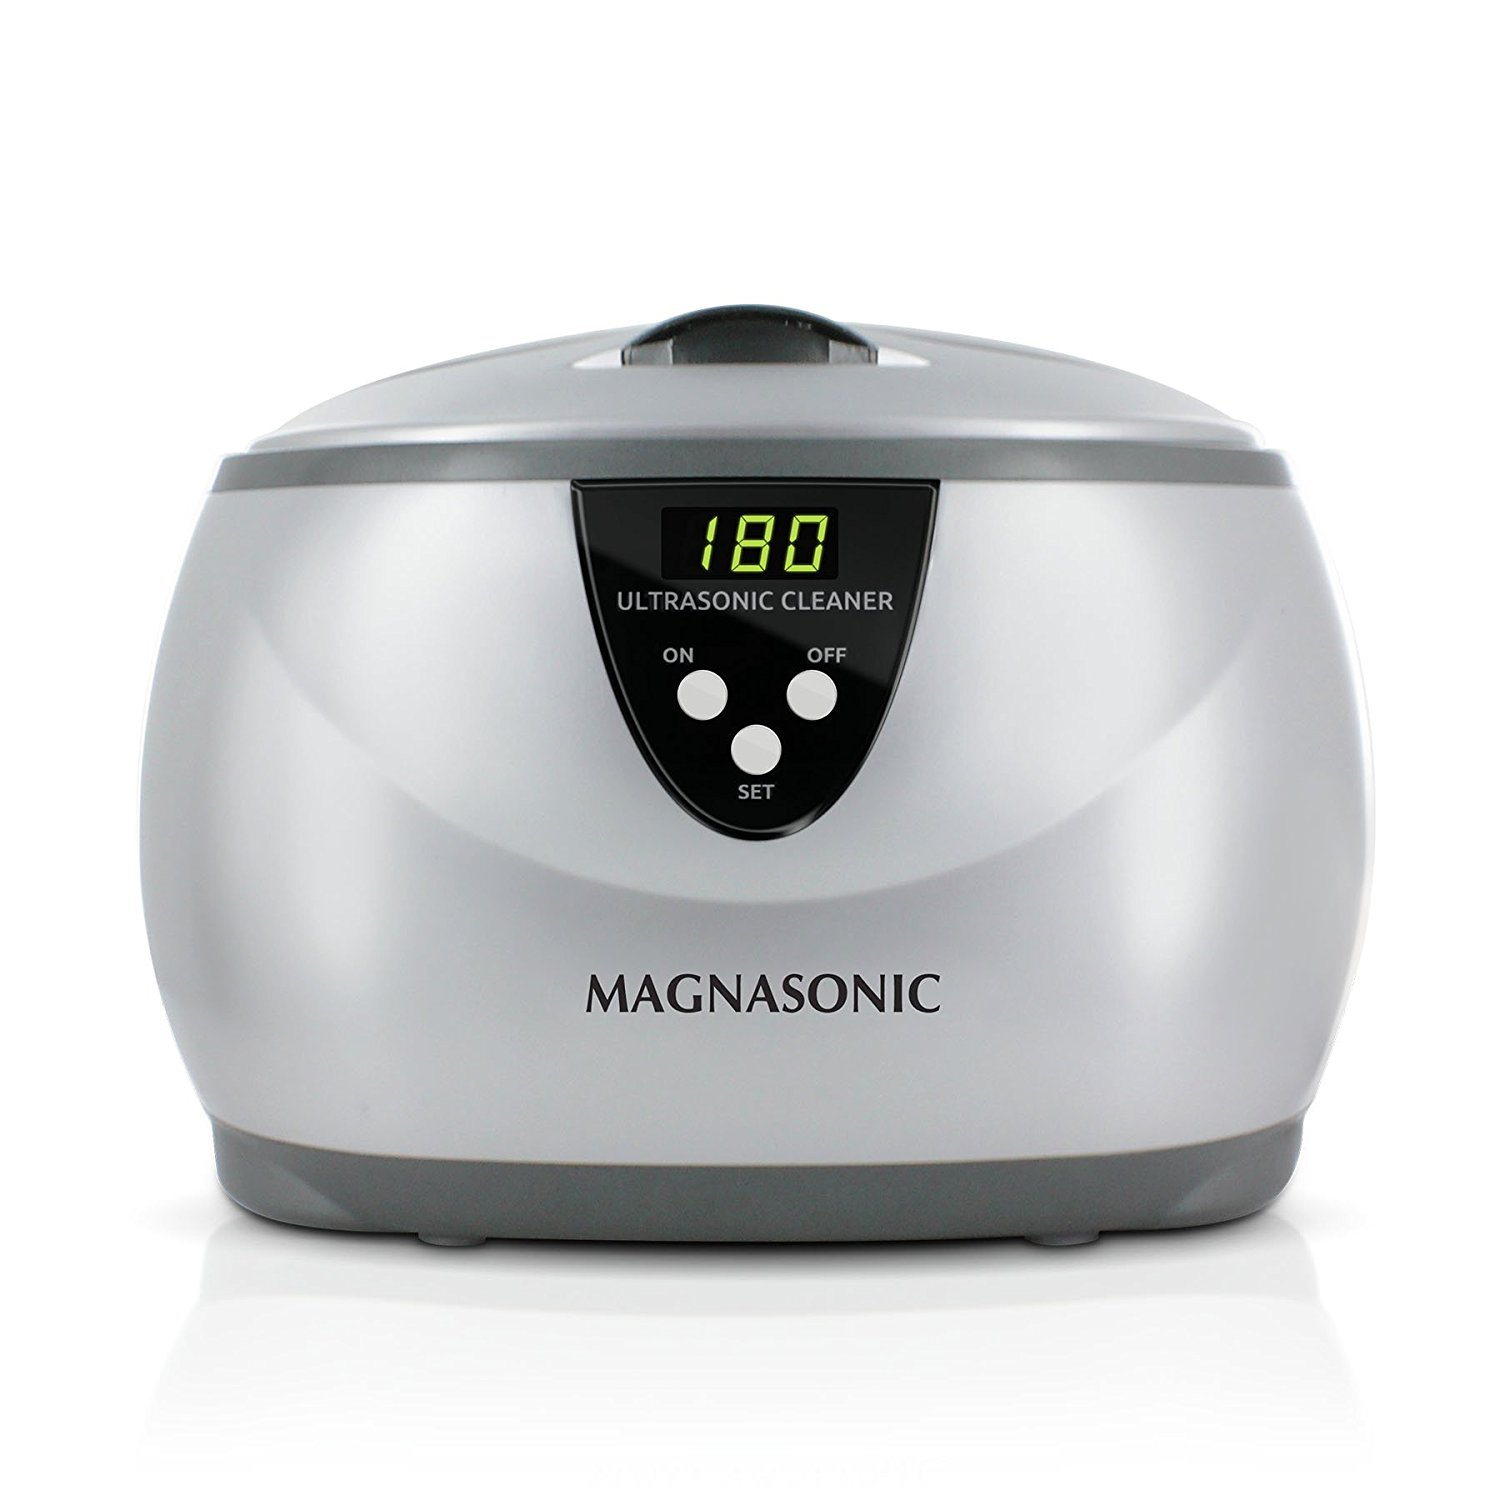 Magnasonic Professional Ultrasonic Cleaner